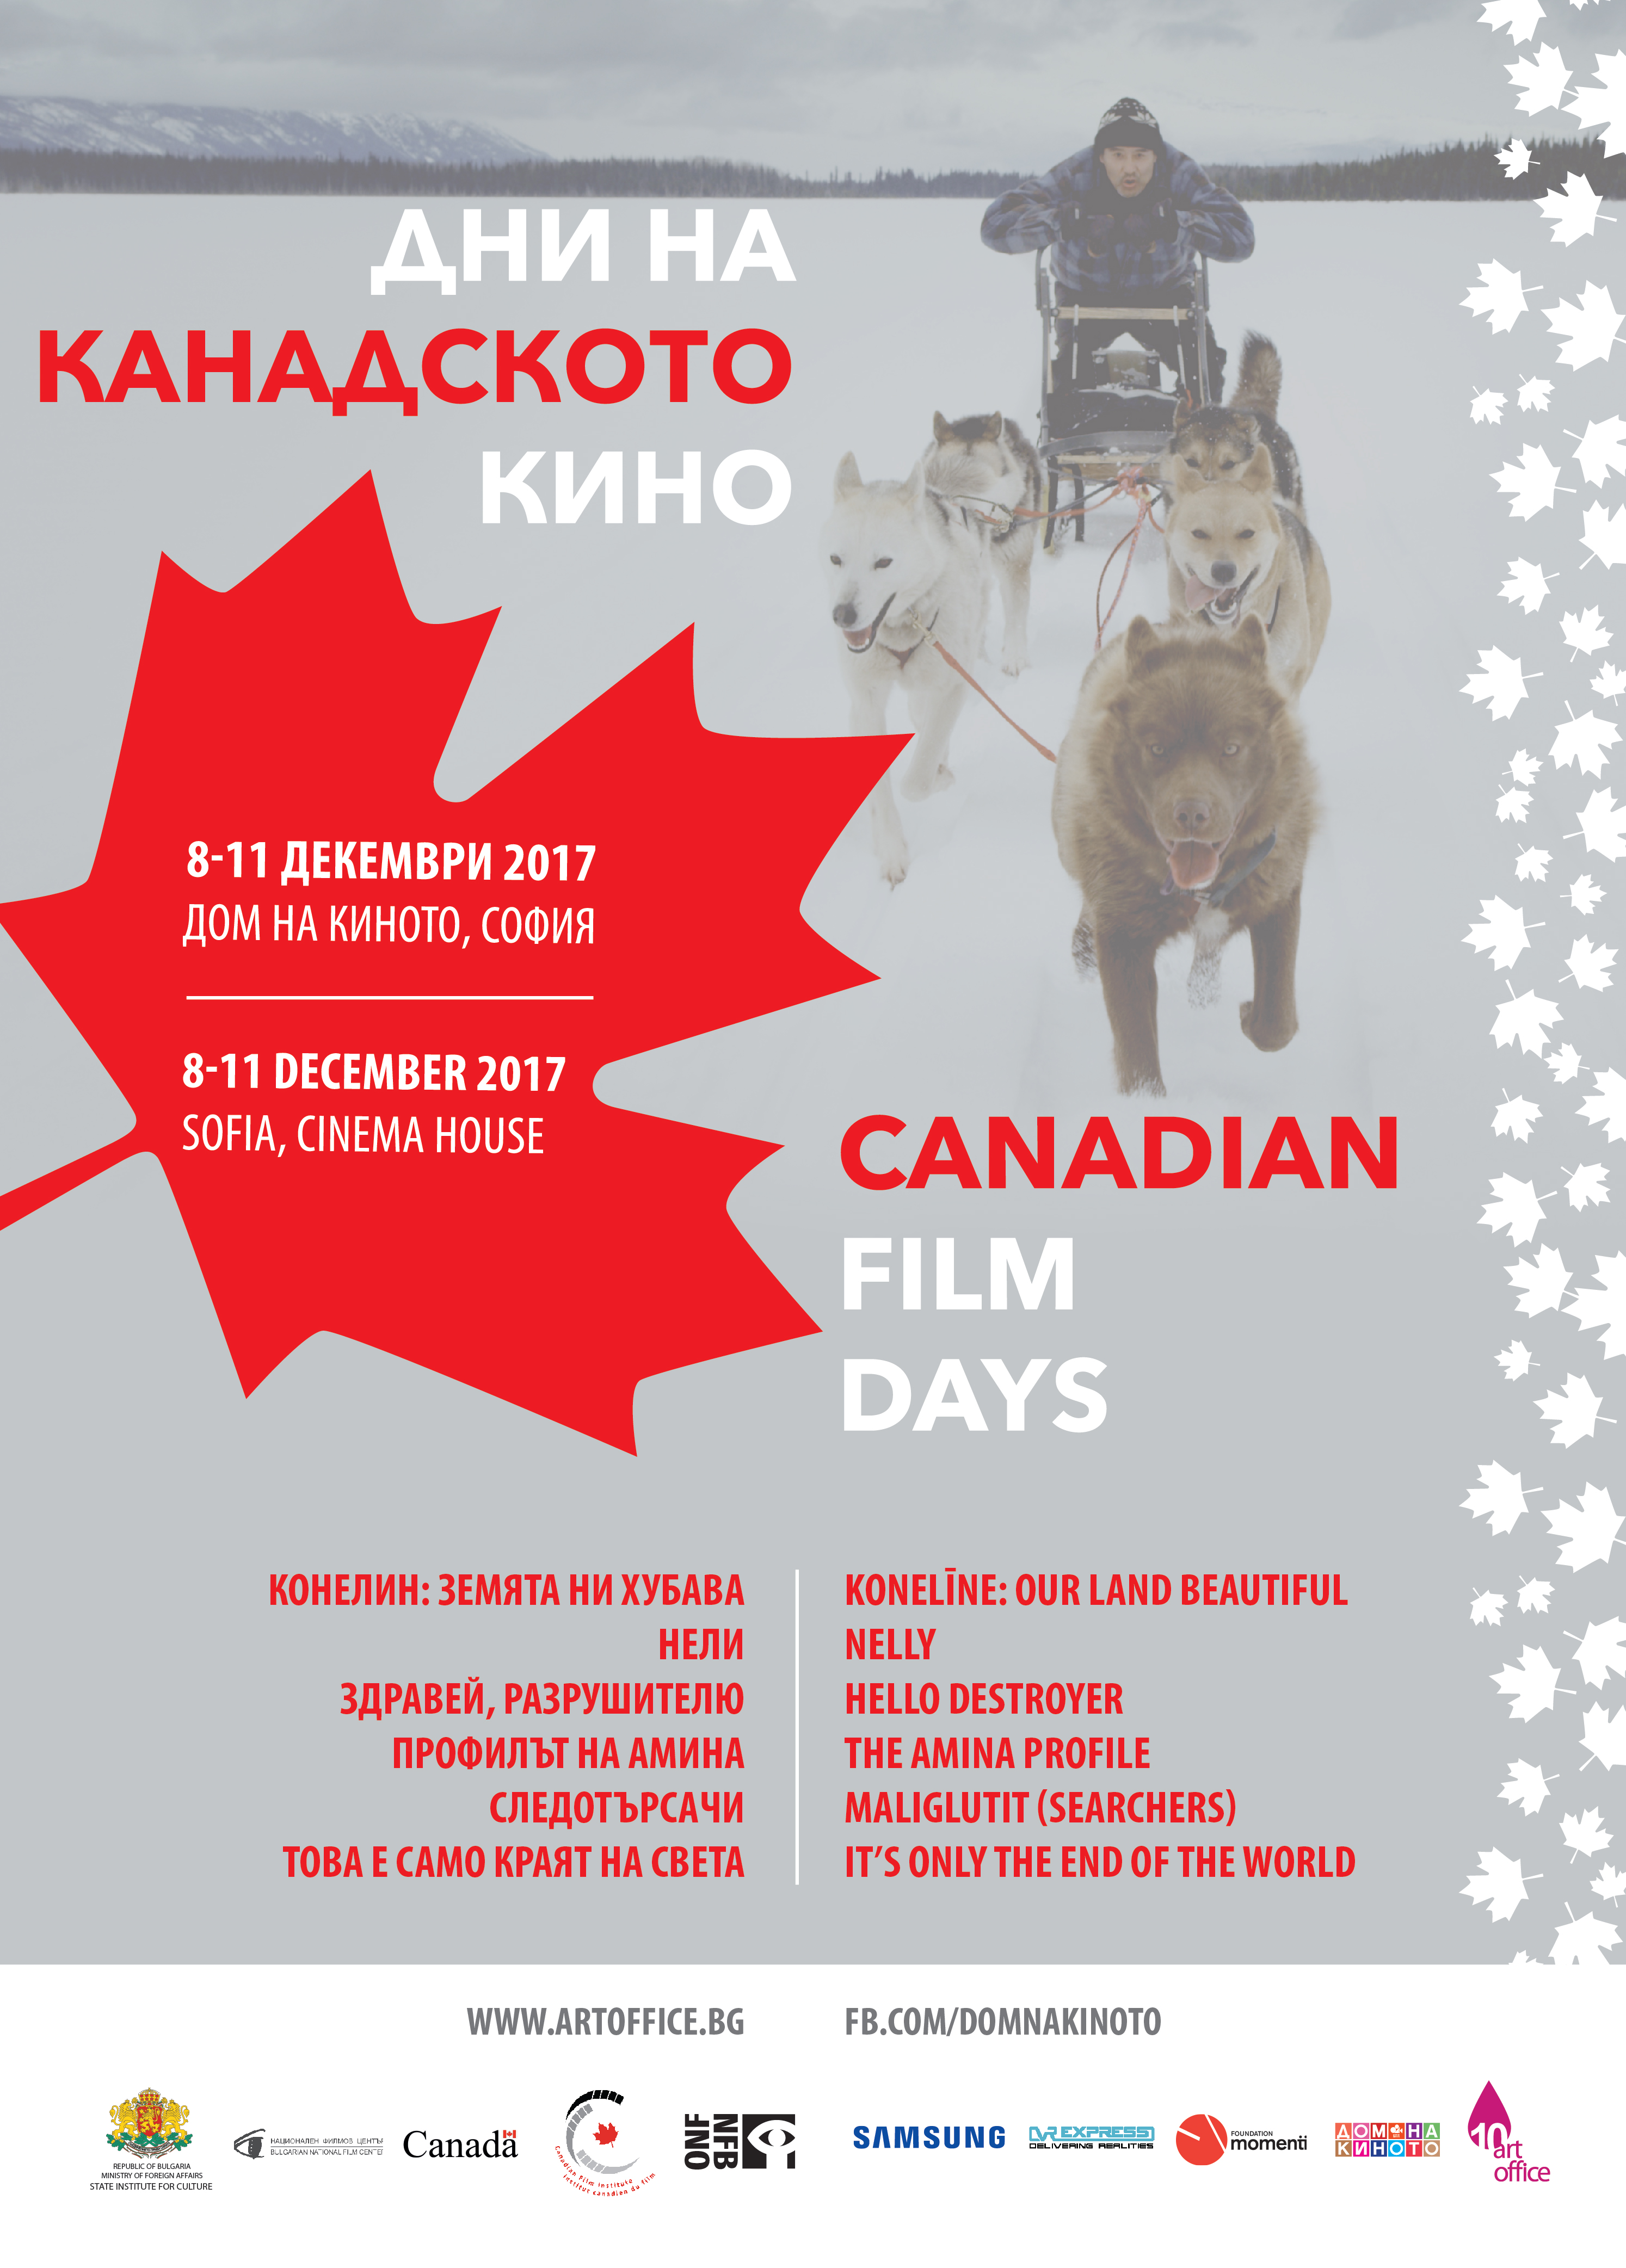 CANADIAN FILM DAYS Poster